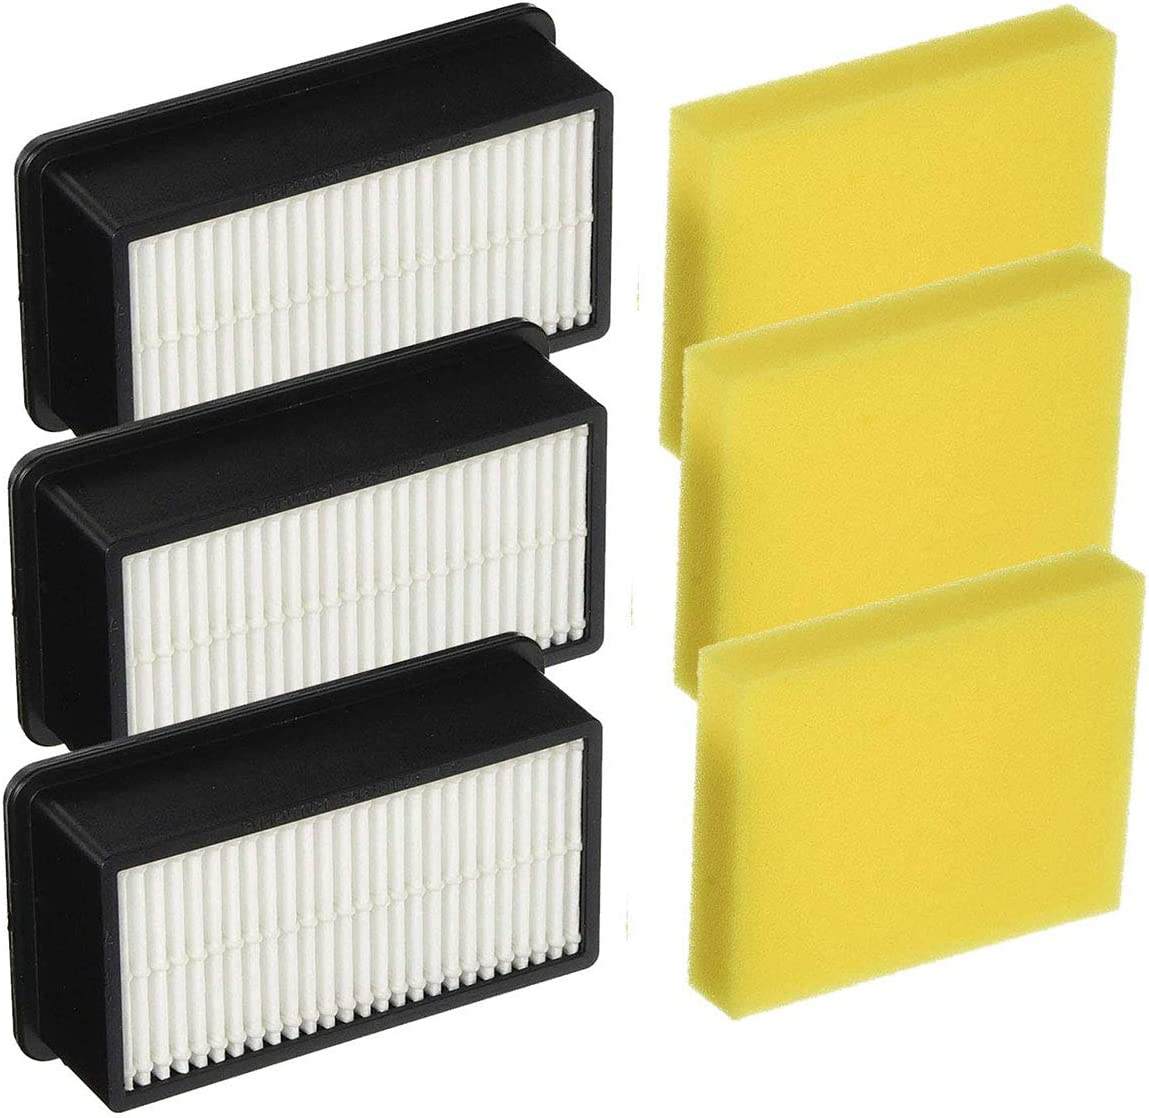 Mochenli Replacement Filters for Bissell 1008 CleanView Vacuums,3 Pack HEPA Filters + 3 Pack Post-Motor Filters, Compare to Part 2032663 & 1601502